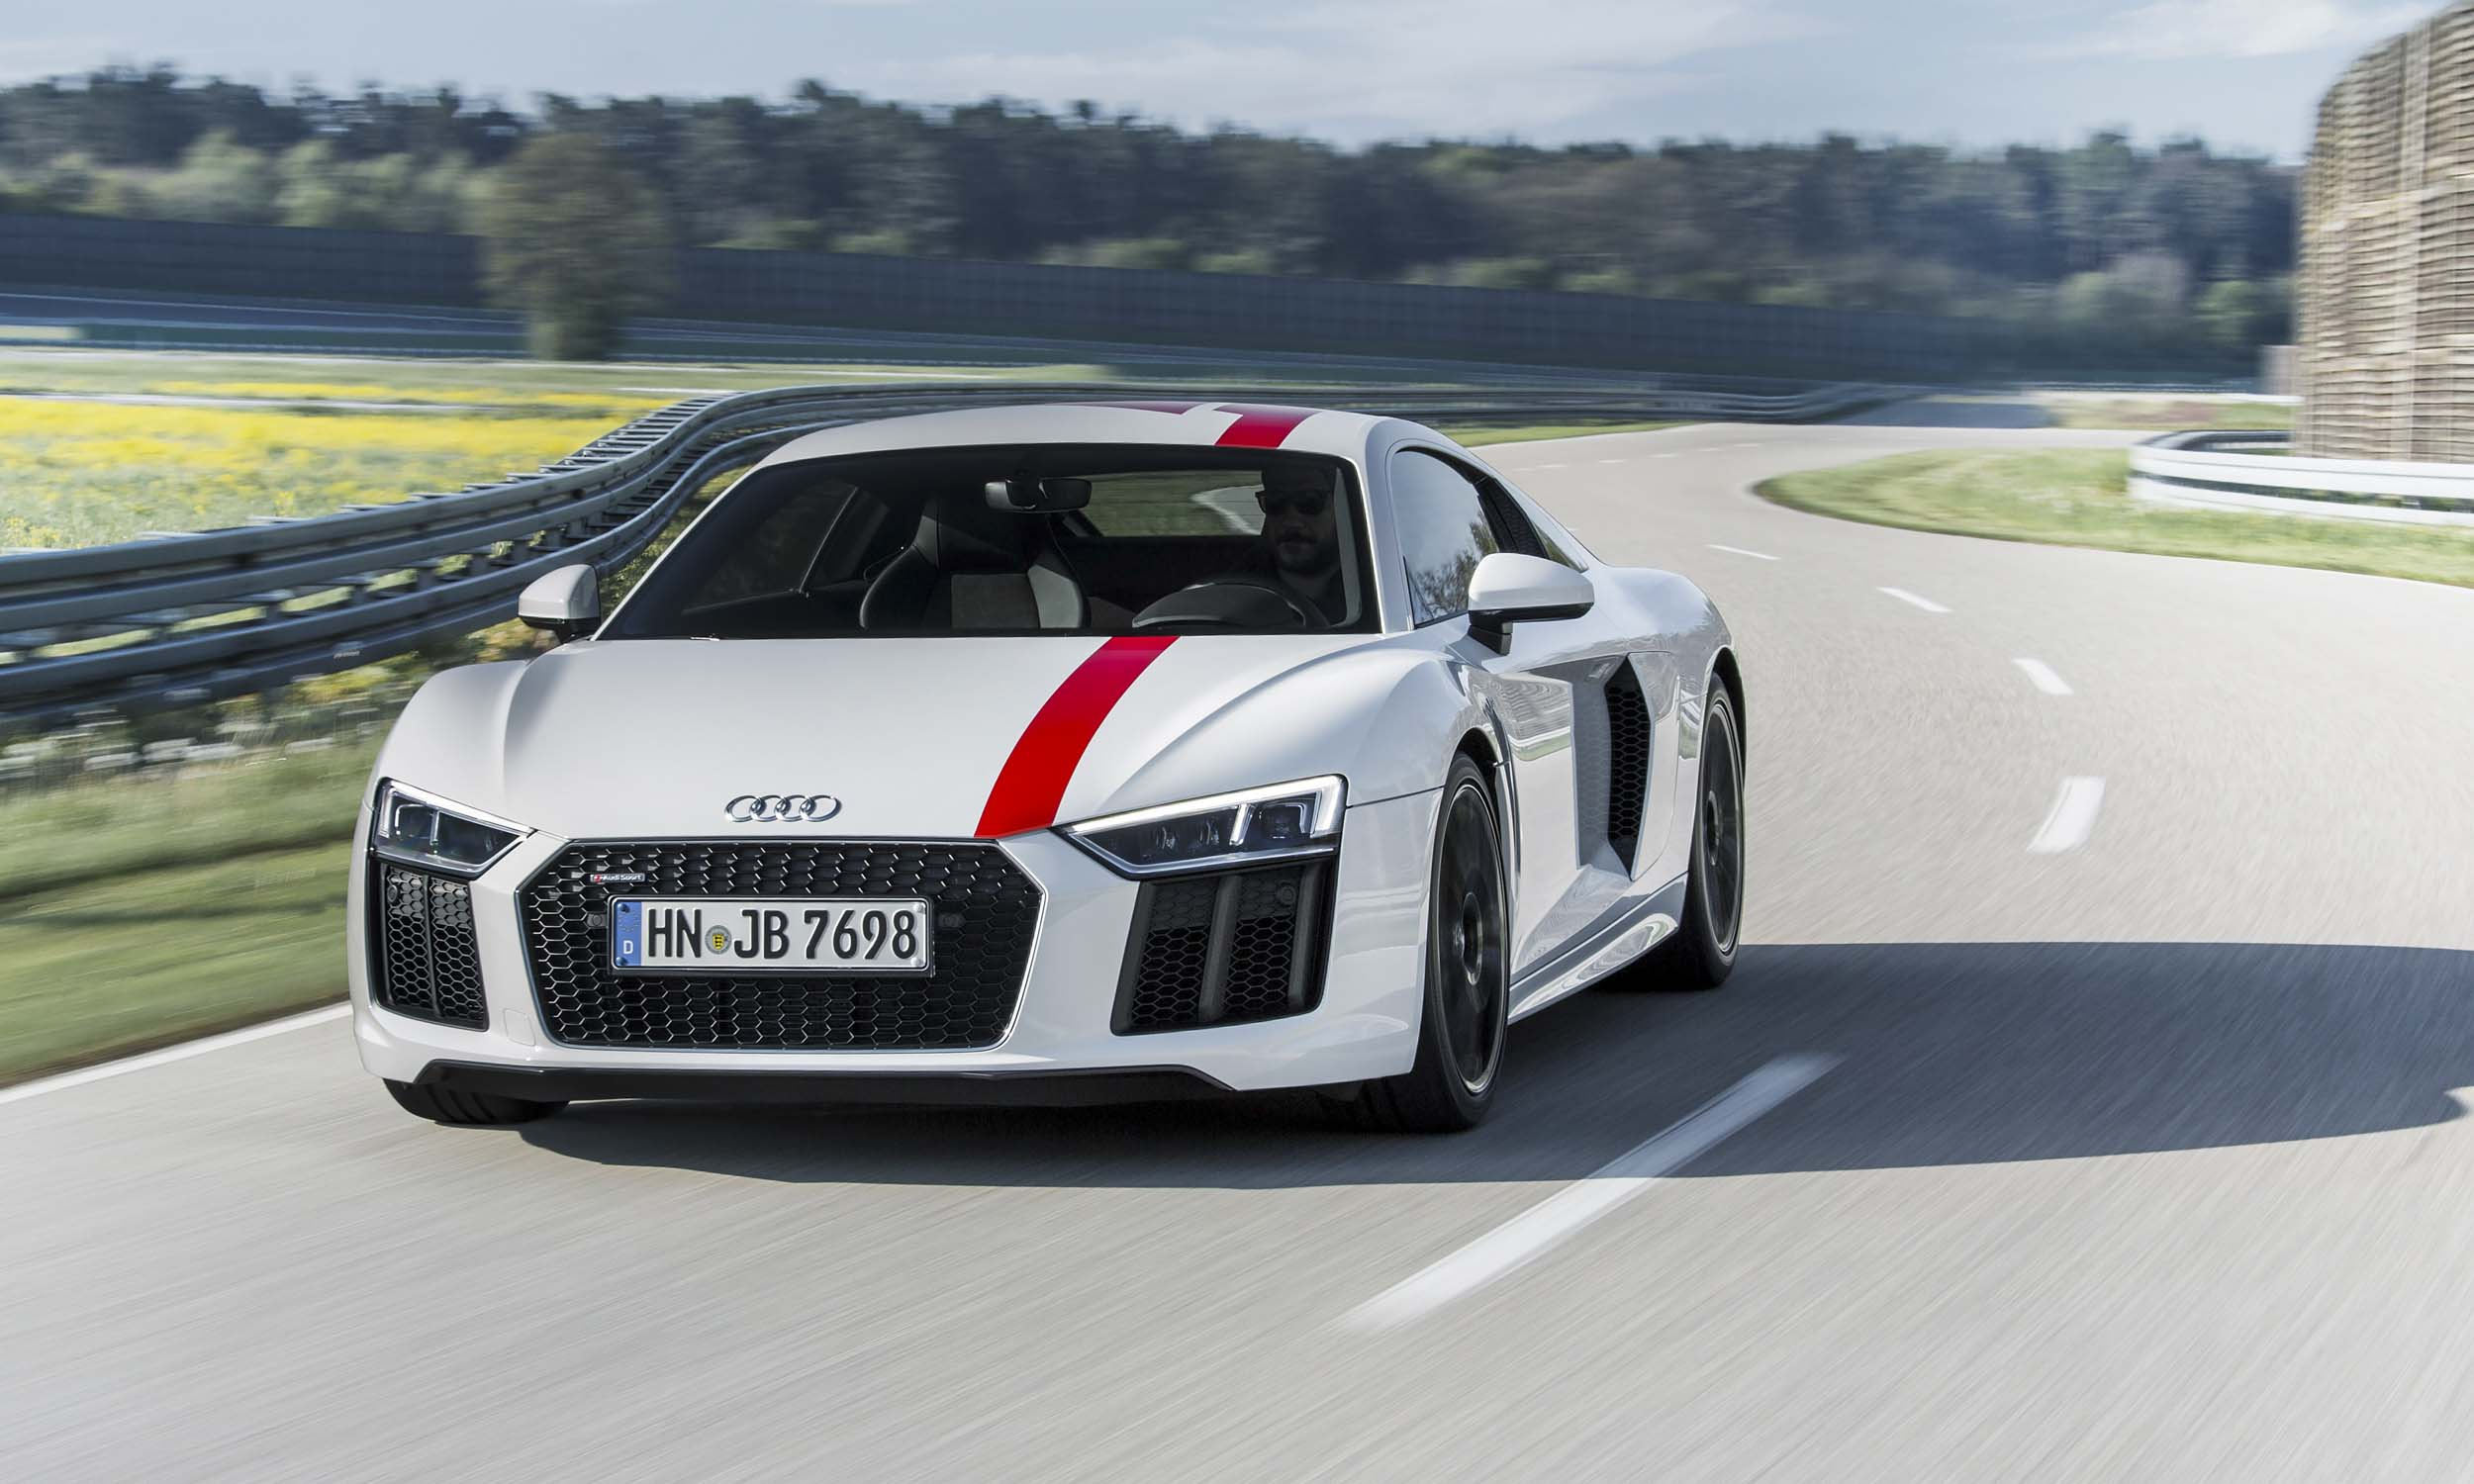 Audiu0027s V10 Powered, Mid Engine Sports Car Meets The 25 Mpg Bar Thanks To A  New Rear Wheel Drive Version For 2018. At The Frankfurt Motor Show, ...